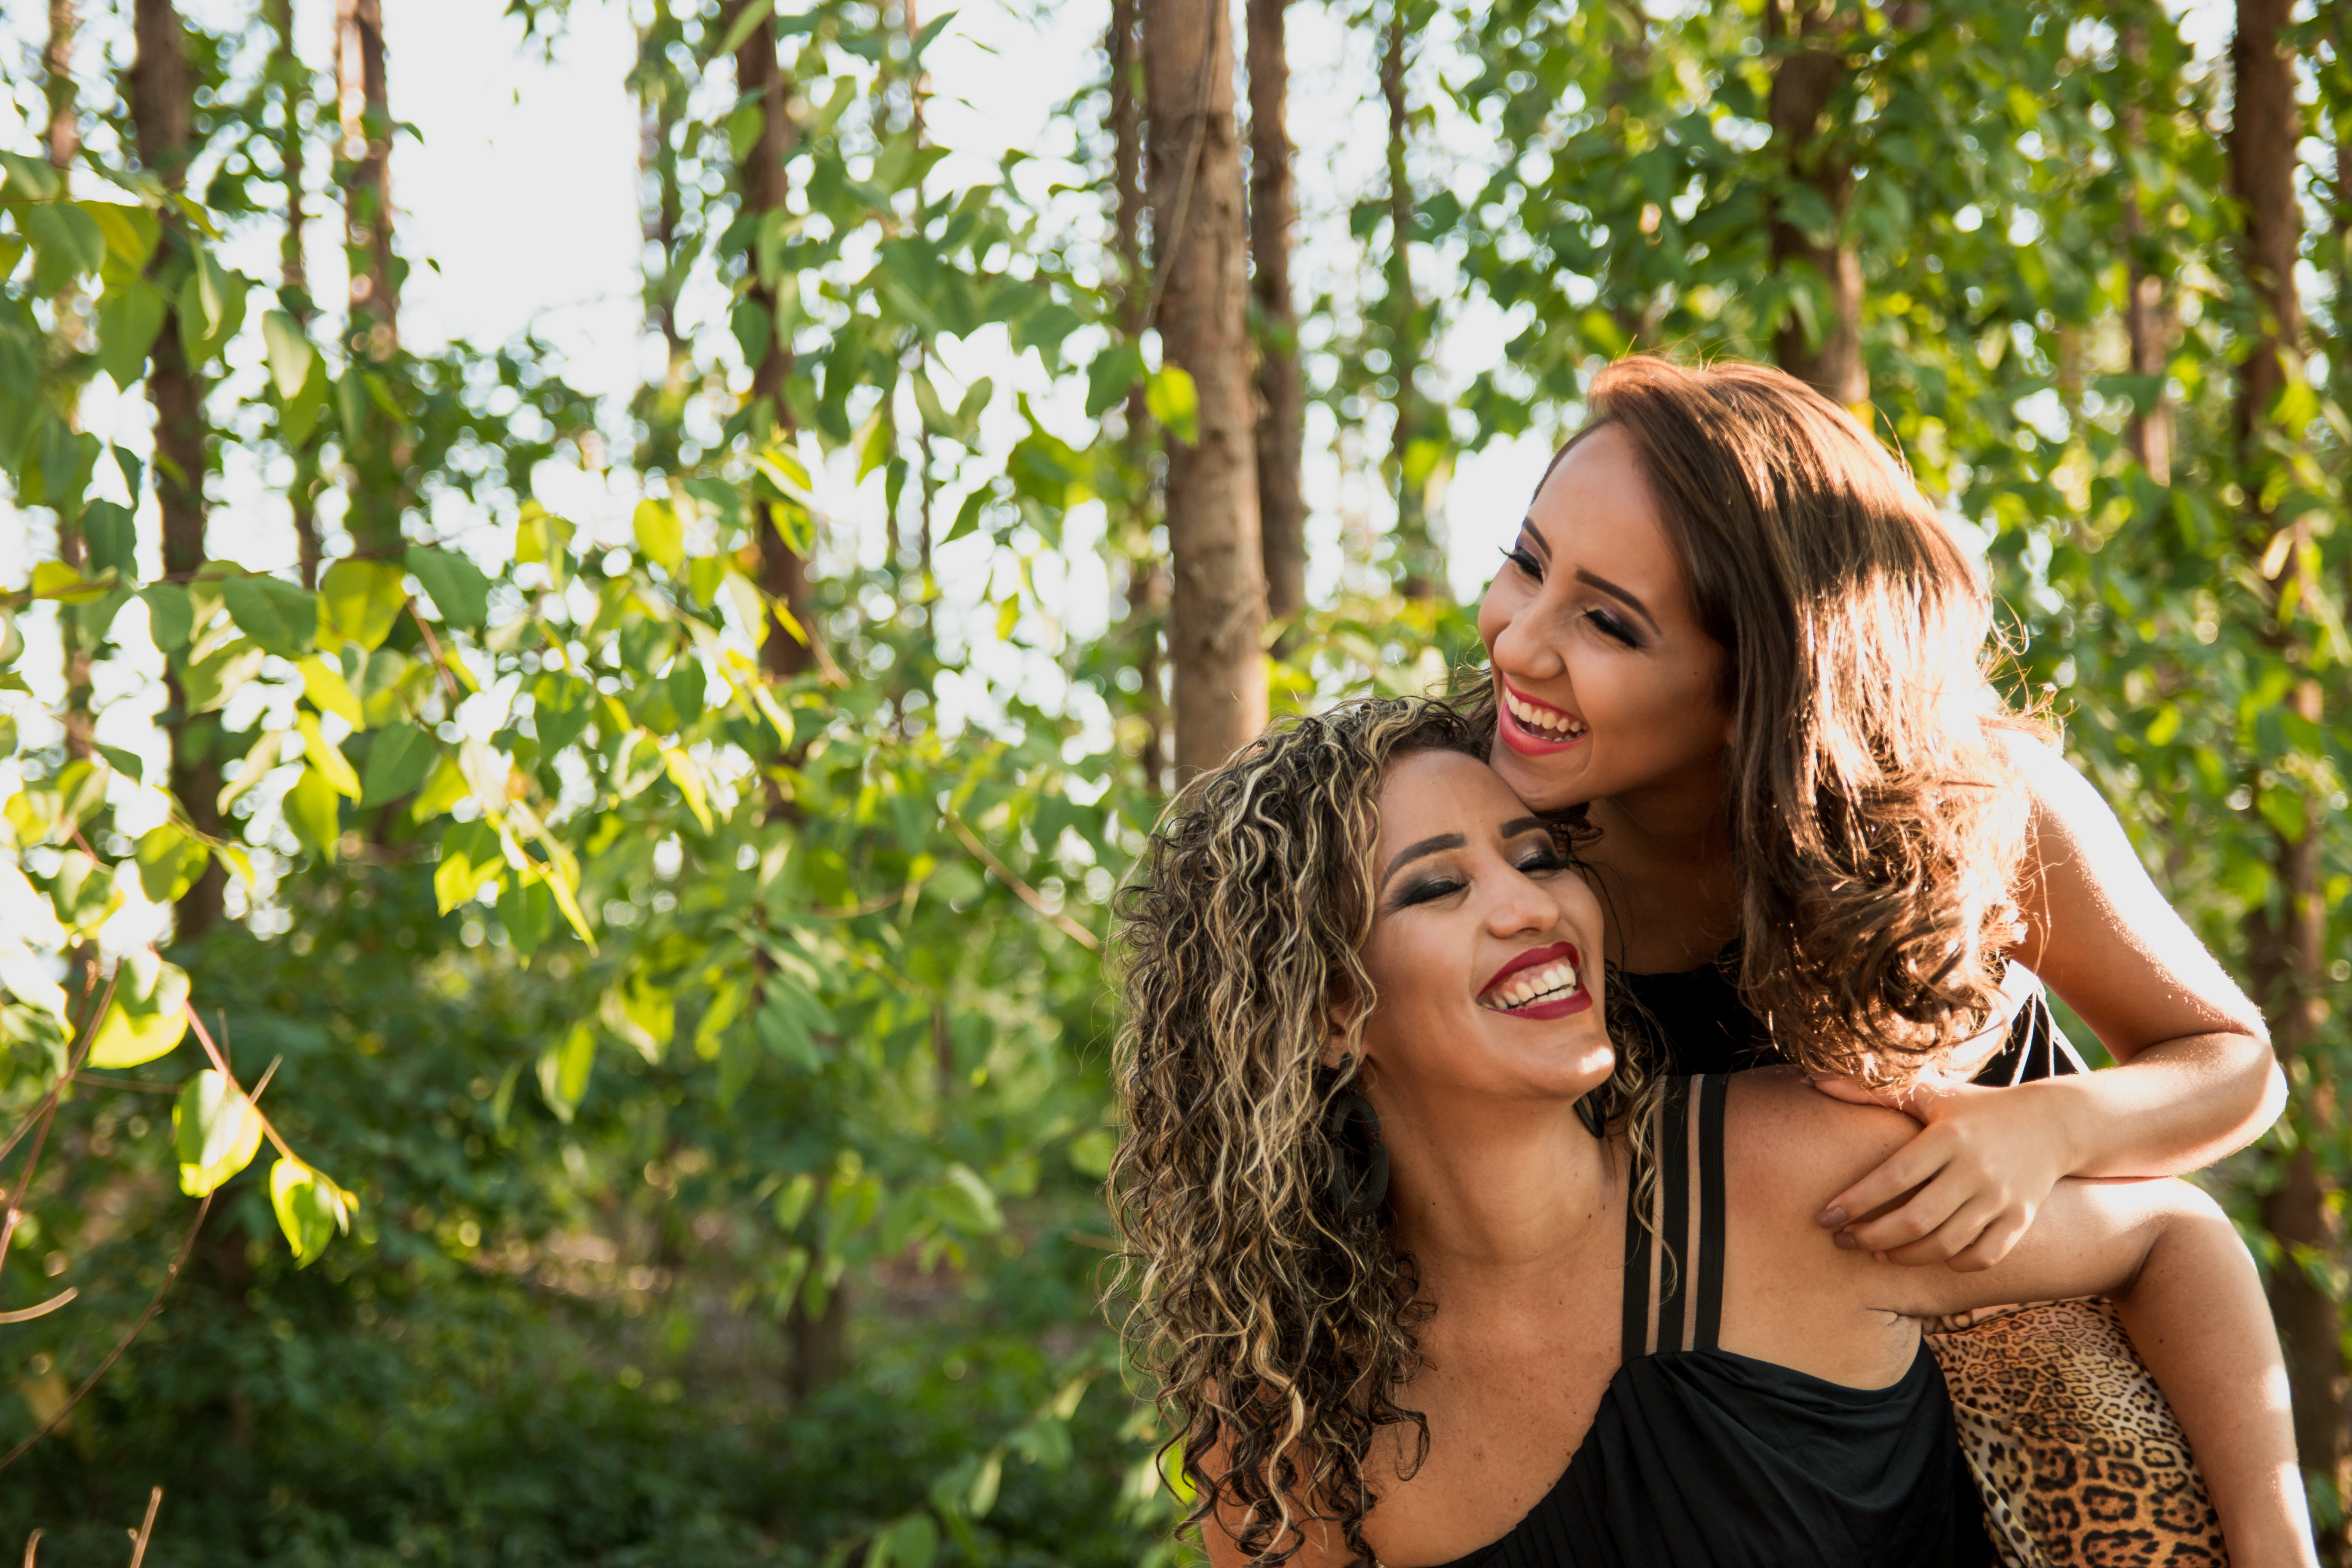 Woman Wearing Black Camisole Beside Woman in Black Dress, Carefree, Nature, Wear, Togetherness, HQ Photo